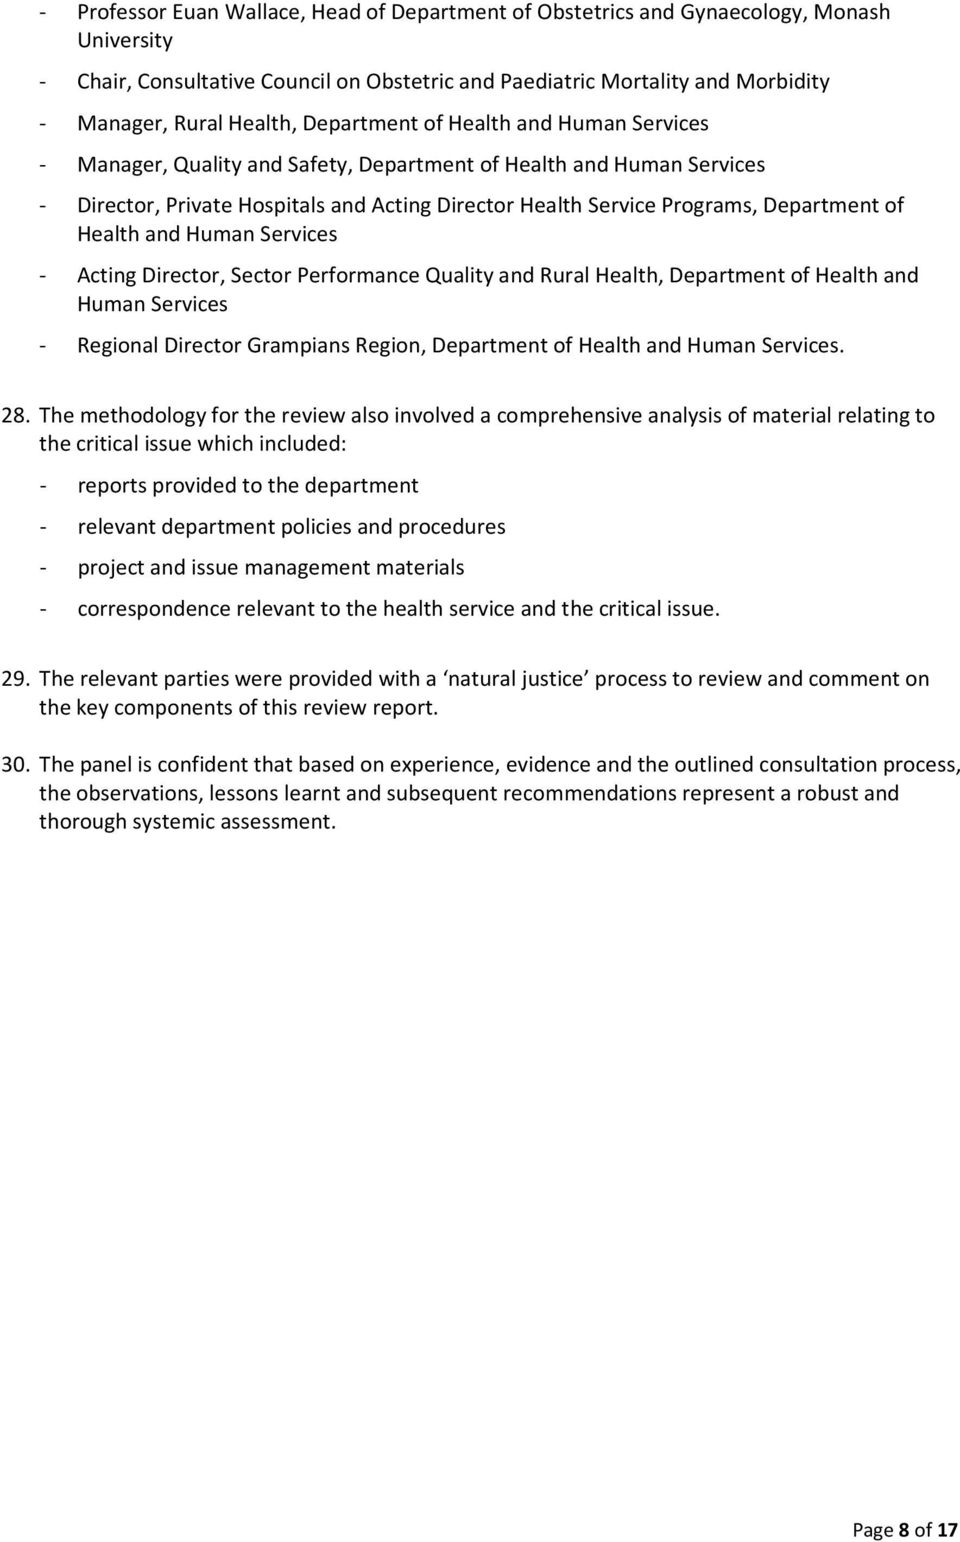 Department of Health and Human Services - Acting Director, Sector Performance Quality and Rural Health, Department of Health and Human Services - Regional Director Grampians Region, Department of